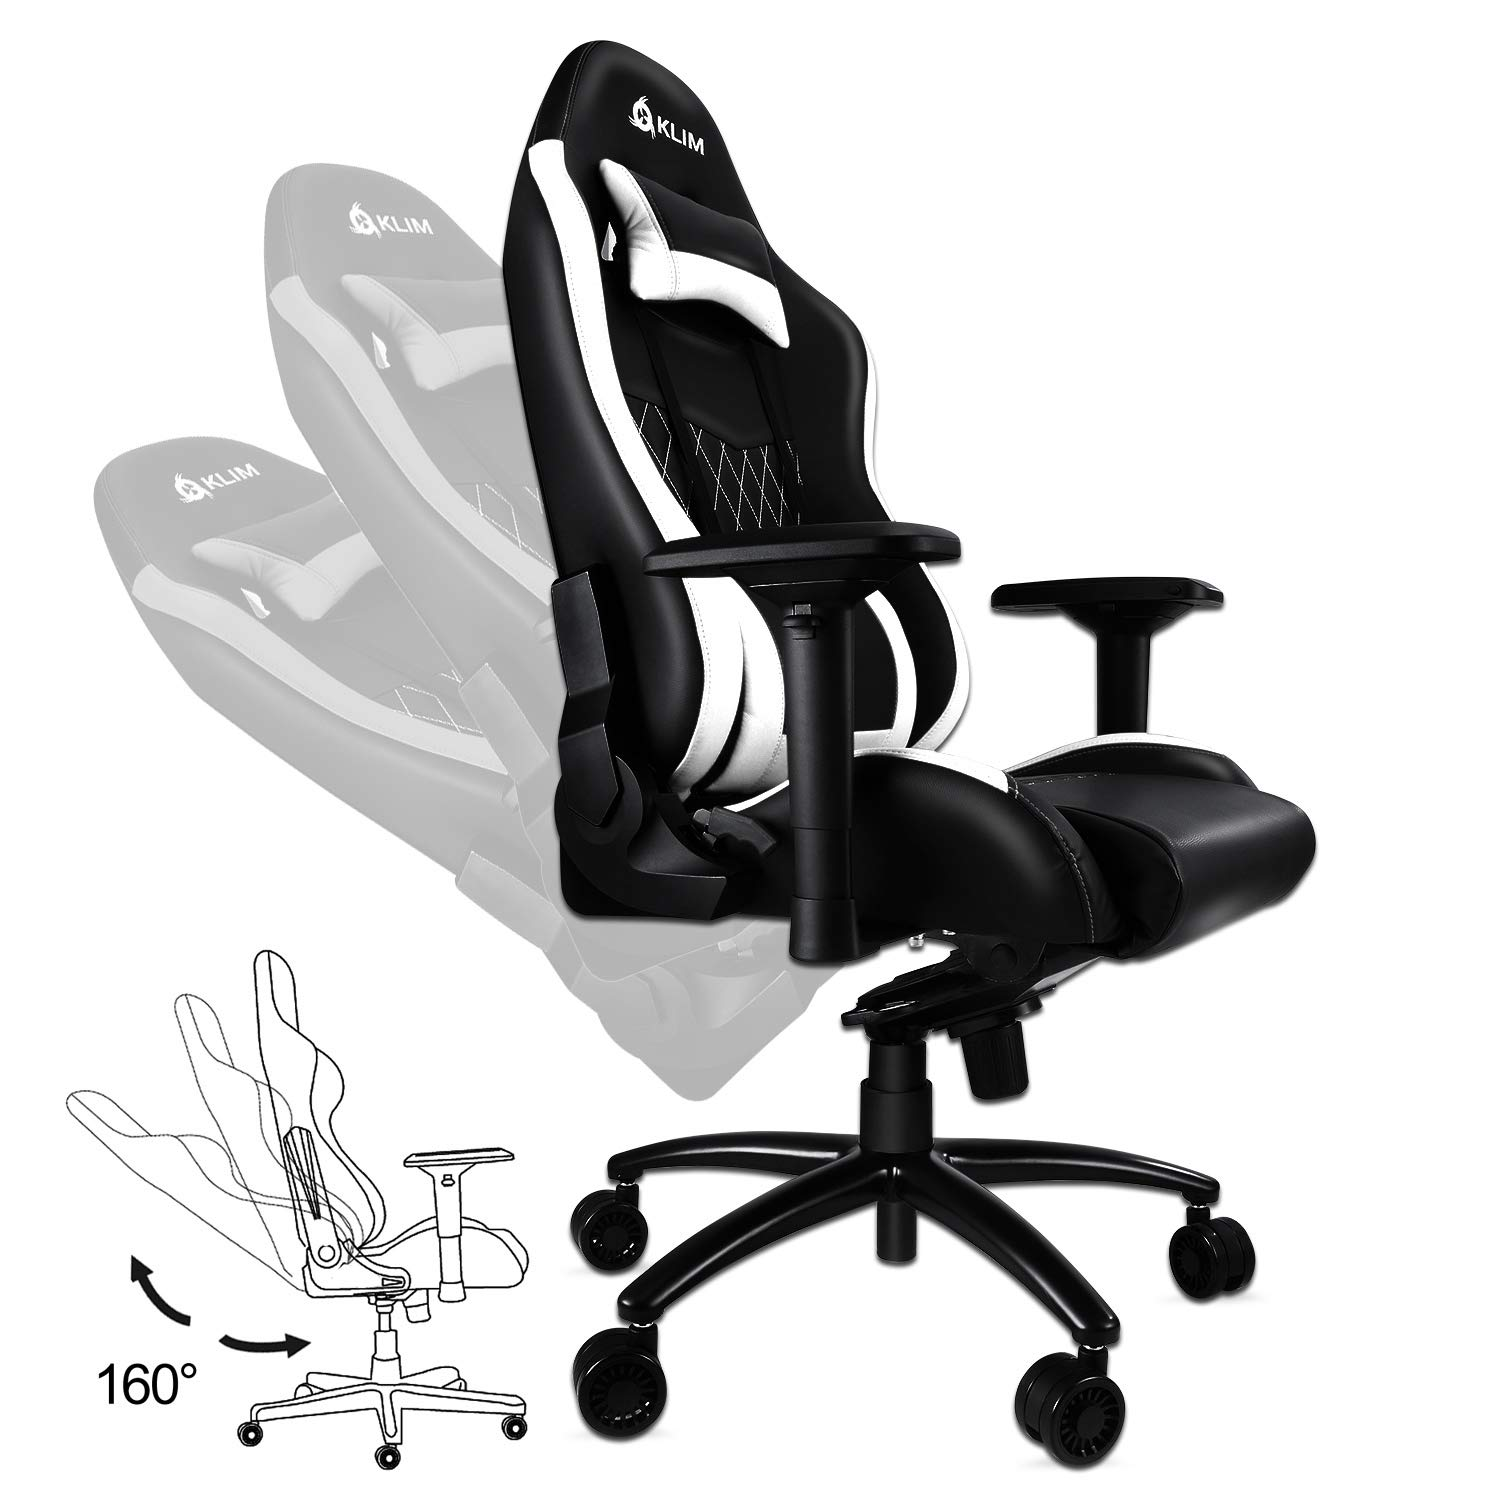 ... Gaming Chair Executive Ergonomic Racing Computer Chair - Back & Head Support - New - Adjustable Armrest - Desk & Office Recliner - Silla Gamer - Black ...